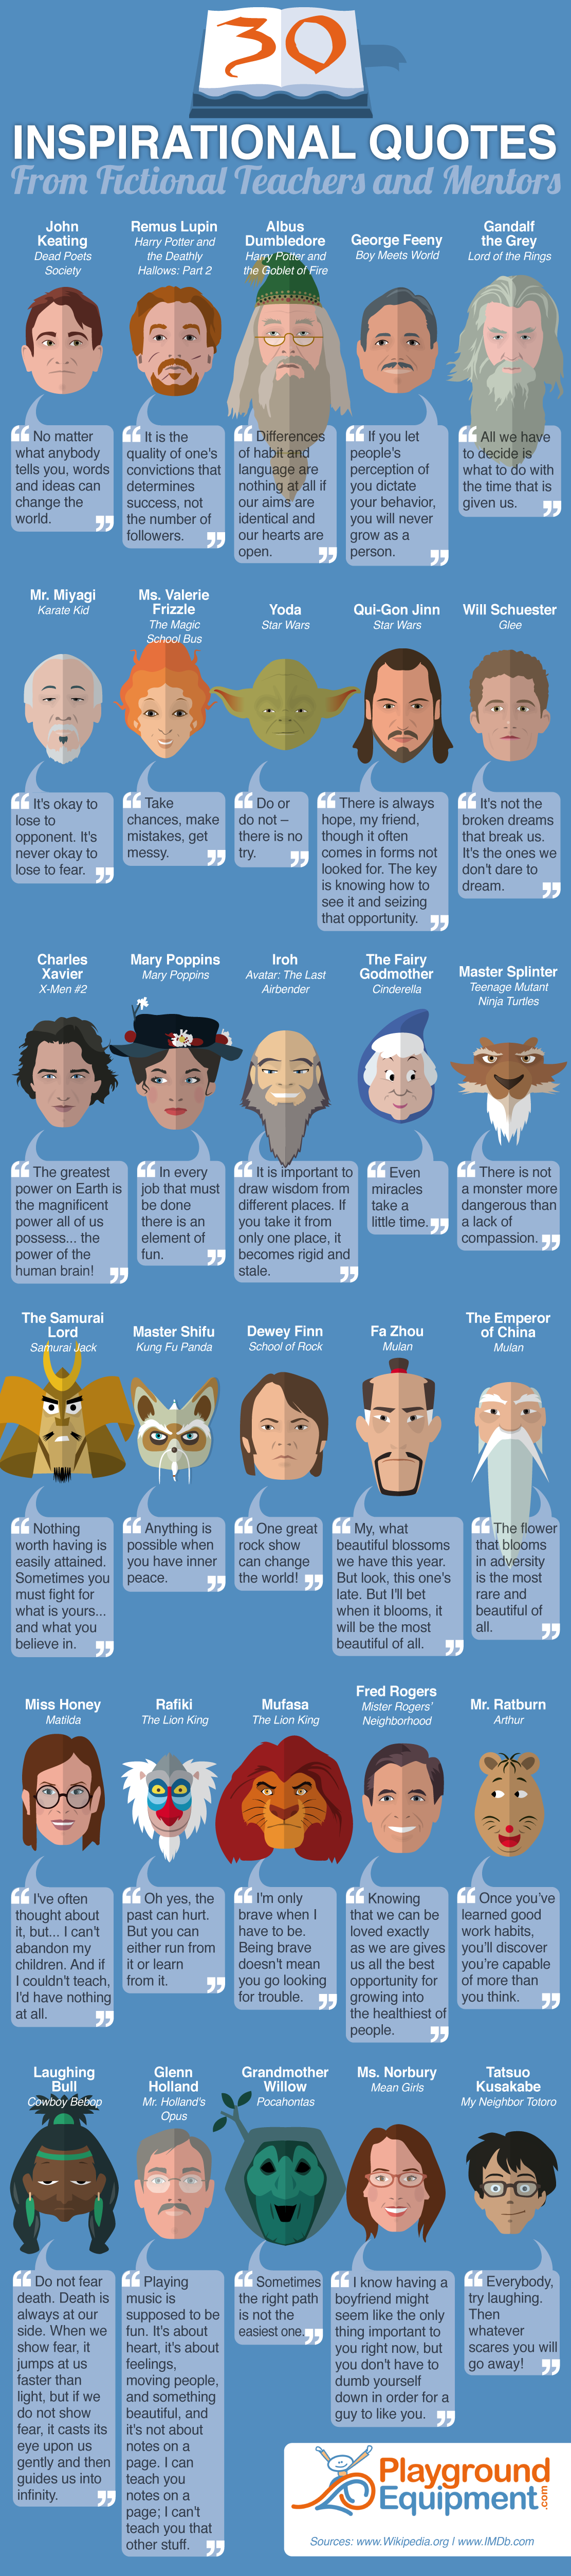 30 inspirational quotes from your favorite fictional characters in